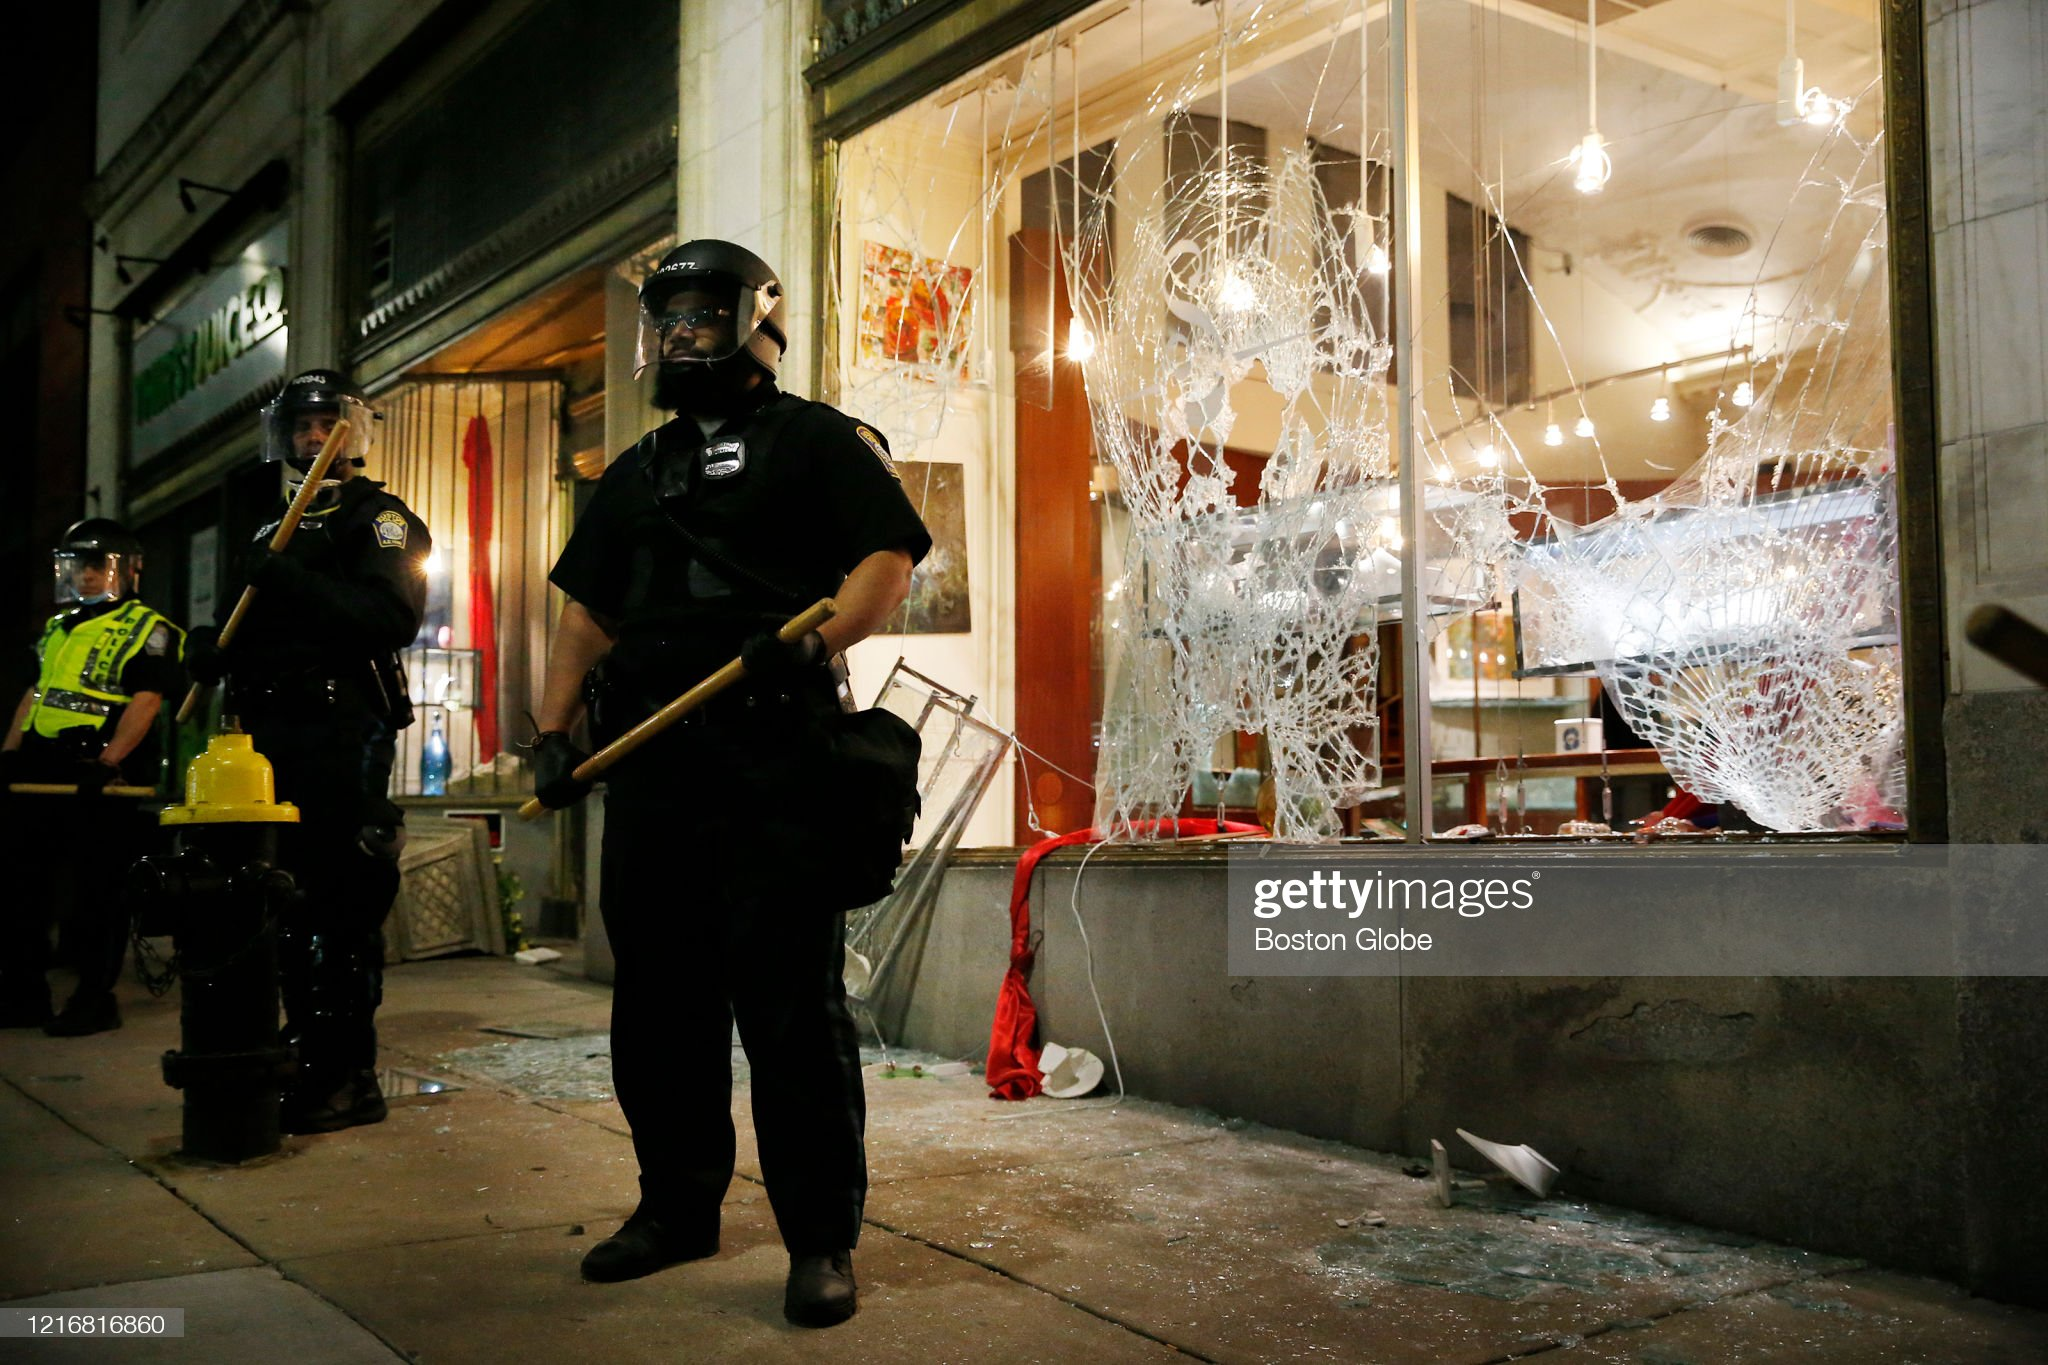 police-stand-in-front-of-a-store-outside